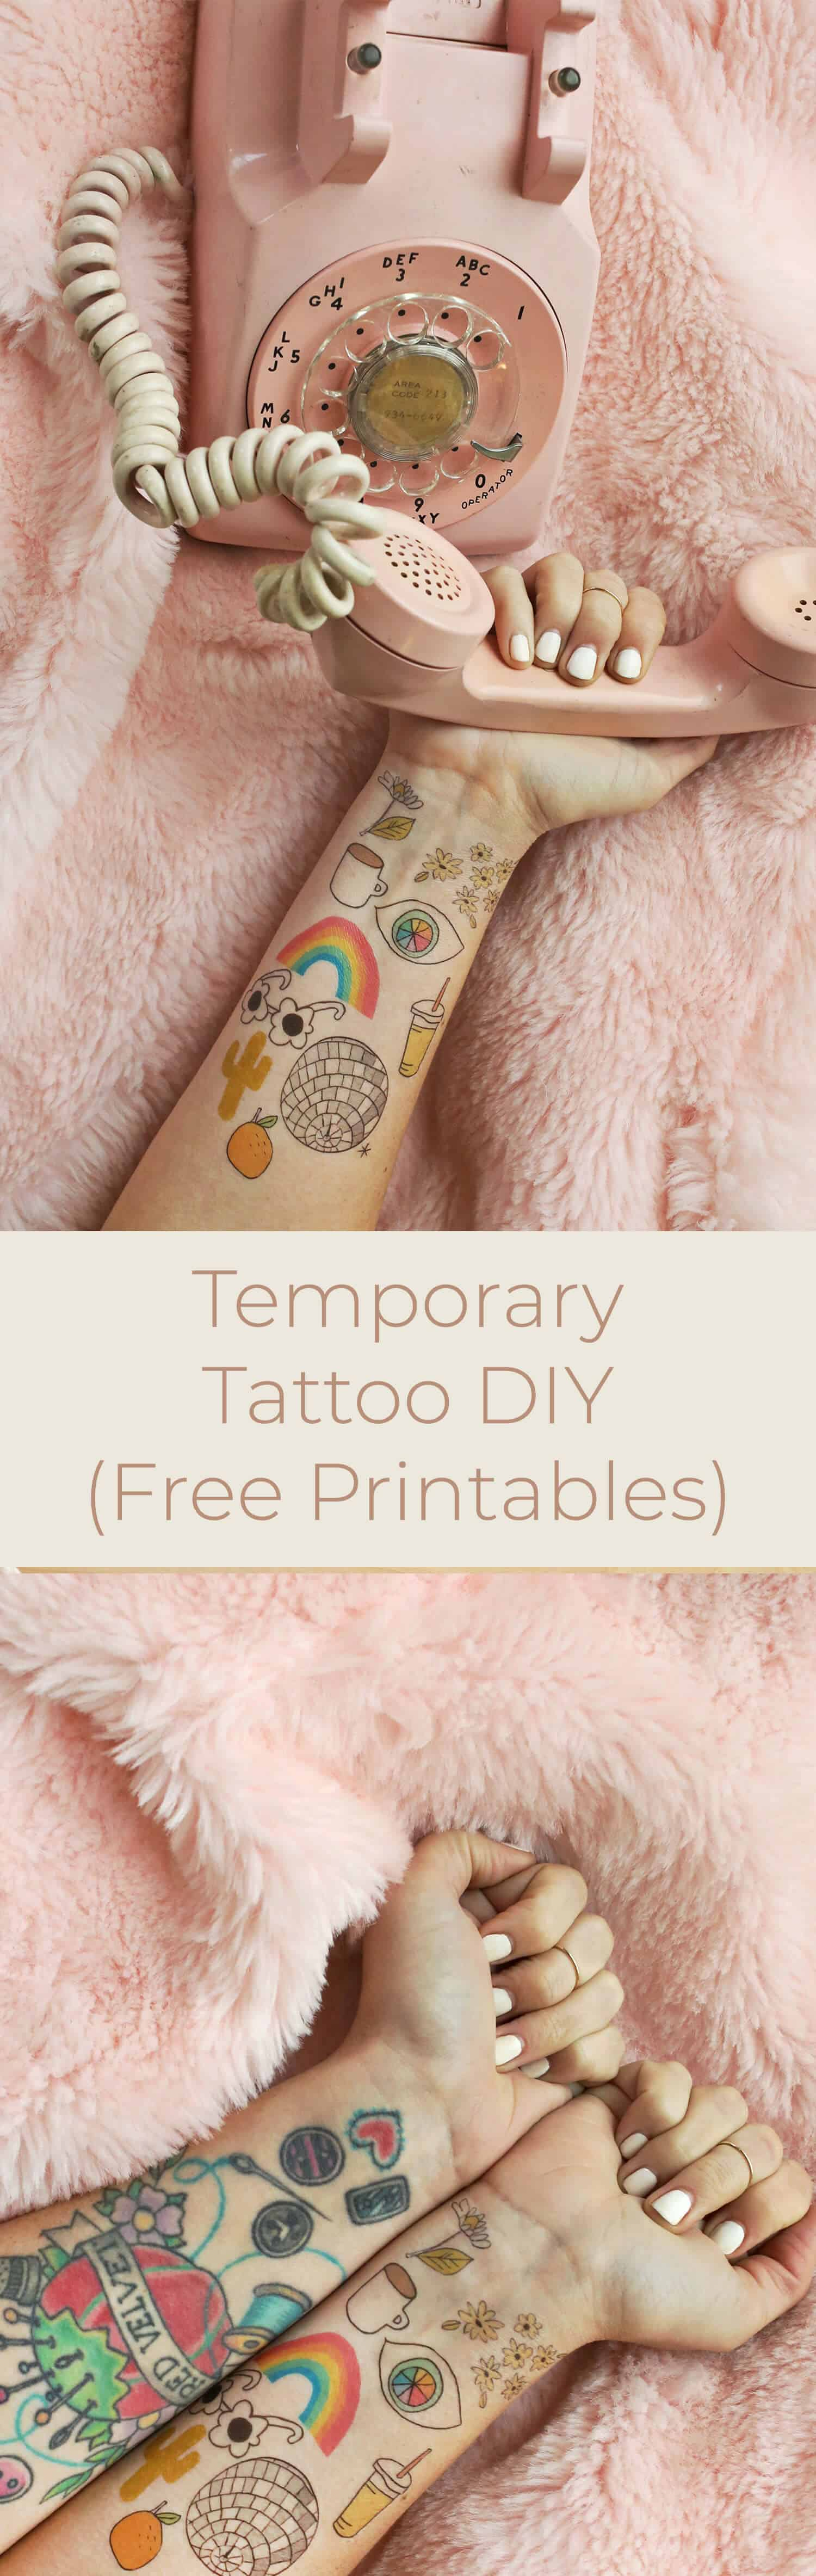 How to Make Temporary Tattoos - A Beautiful Mess